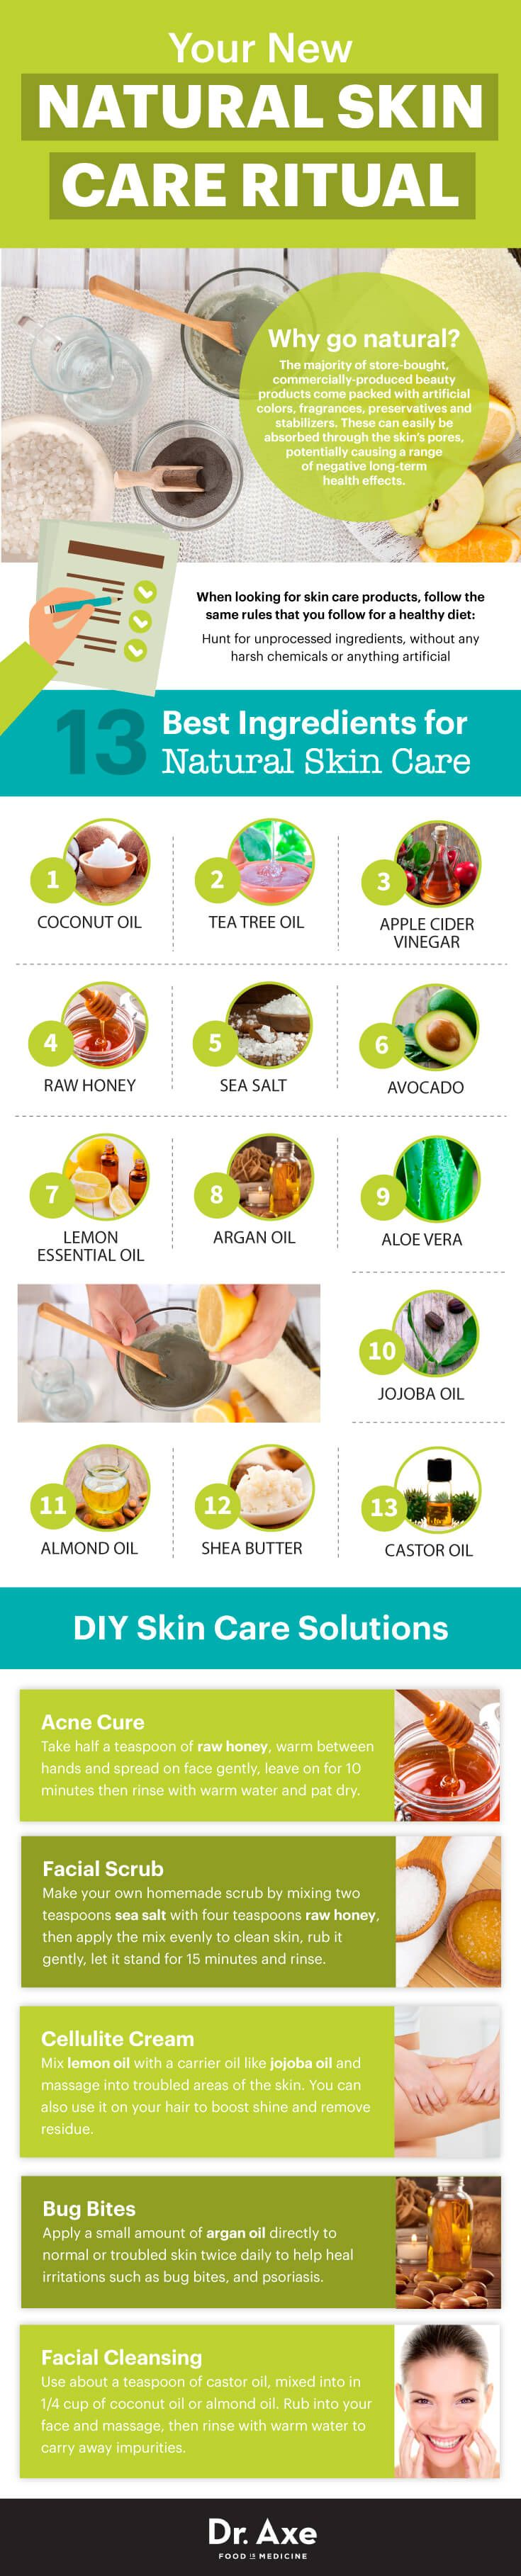 13 Best Ingredients for Your Natural Skin Care Ritual - Dr. Axe